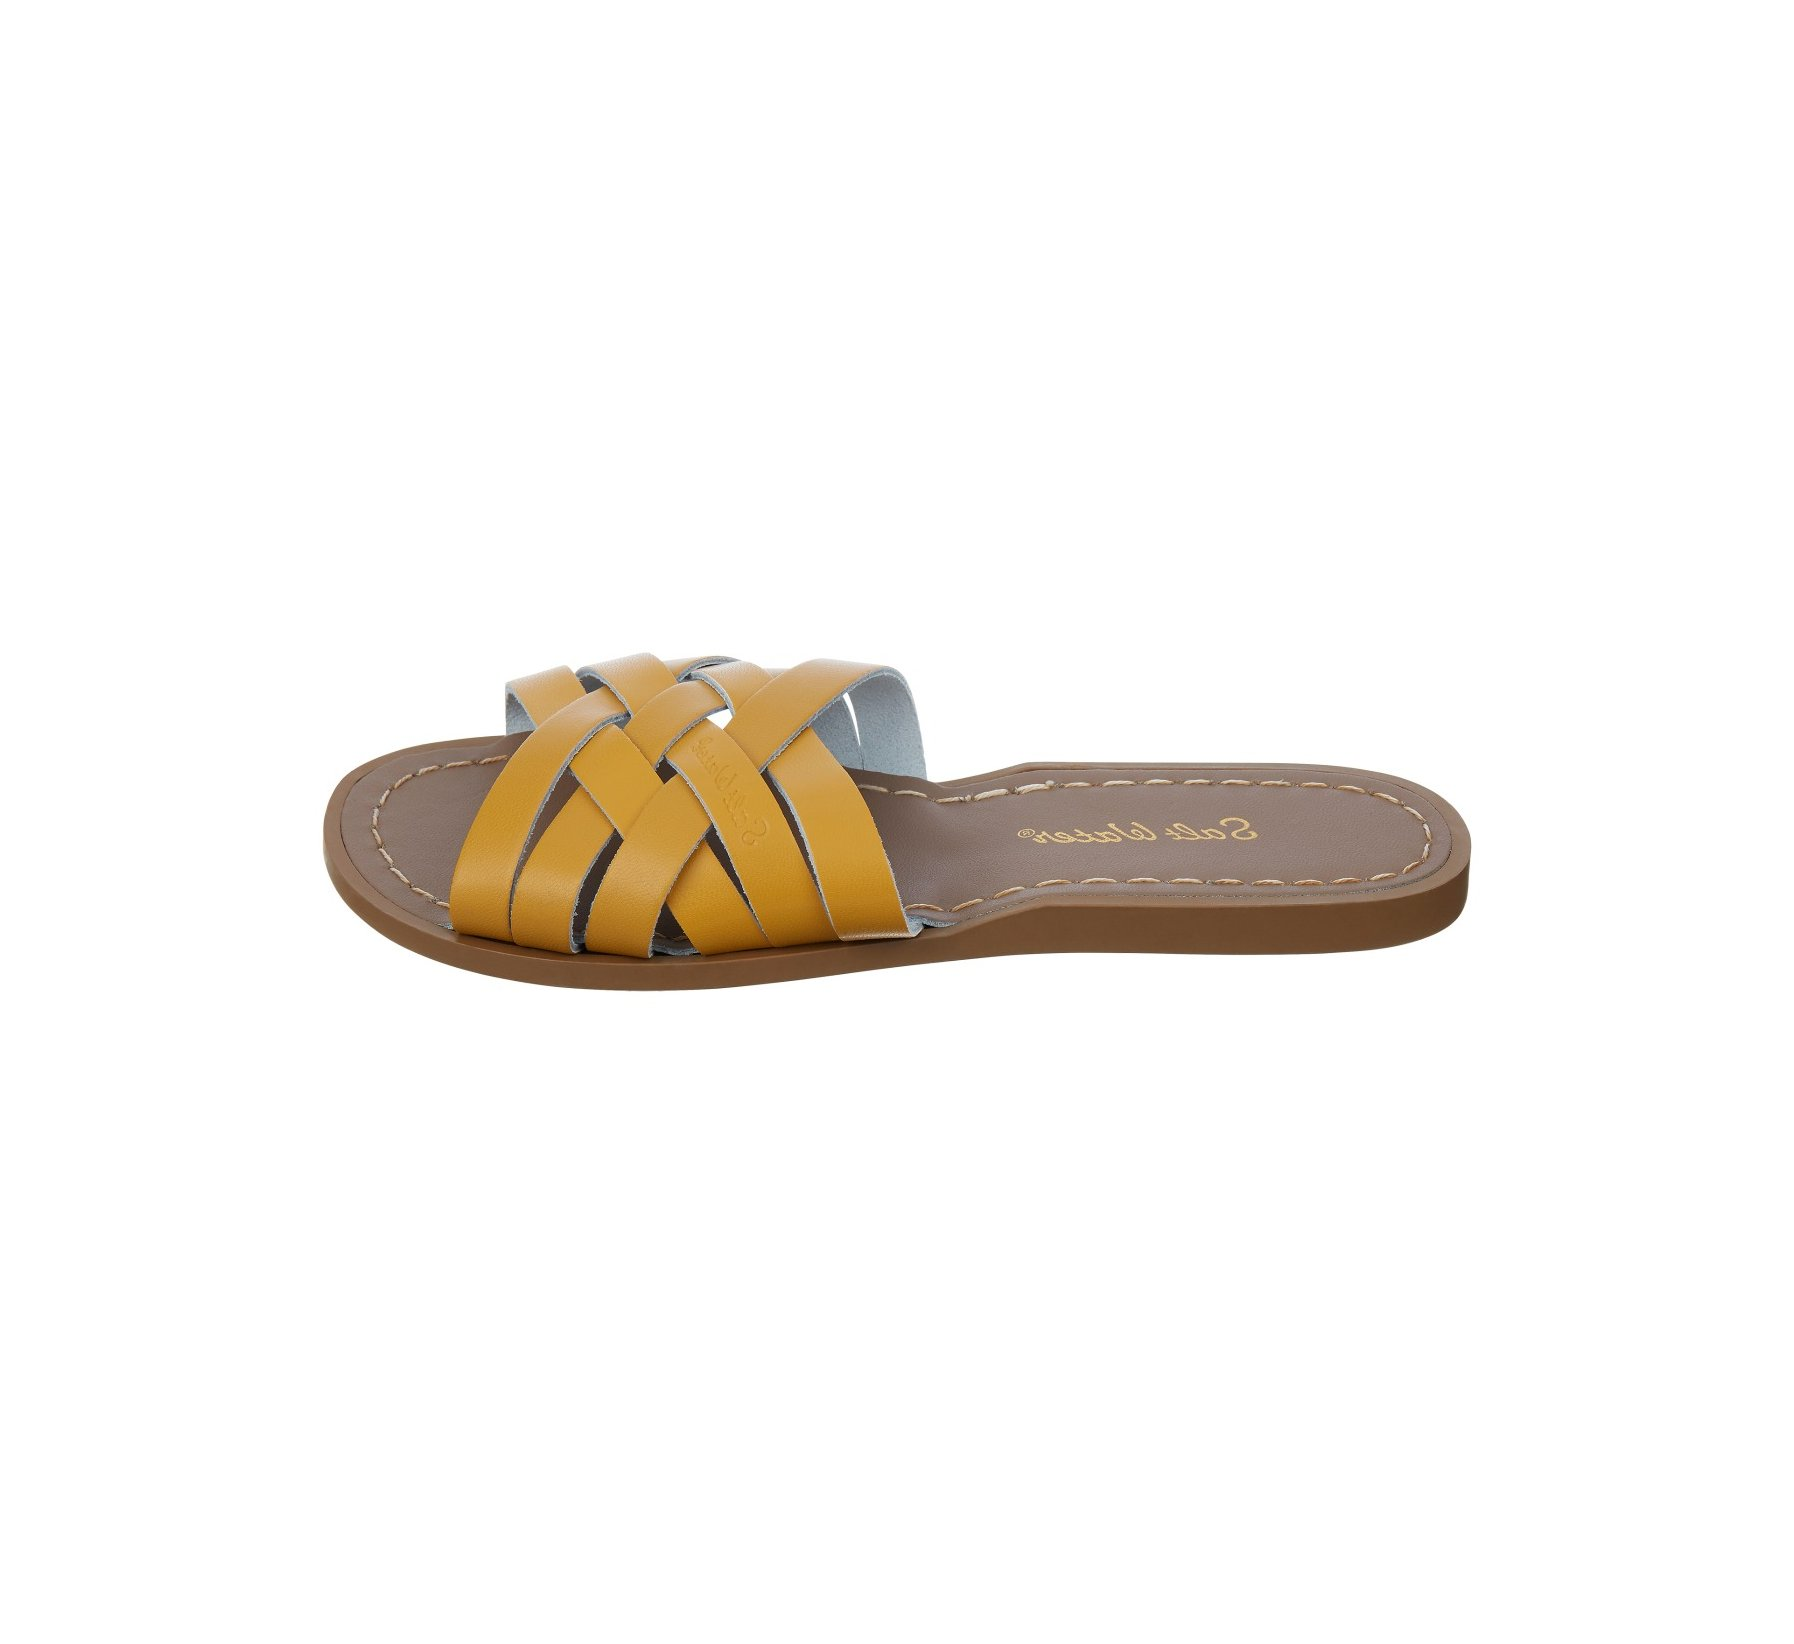 Retro Slide in Senfgelb - Salt Water Sandals